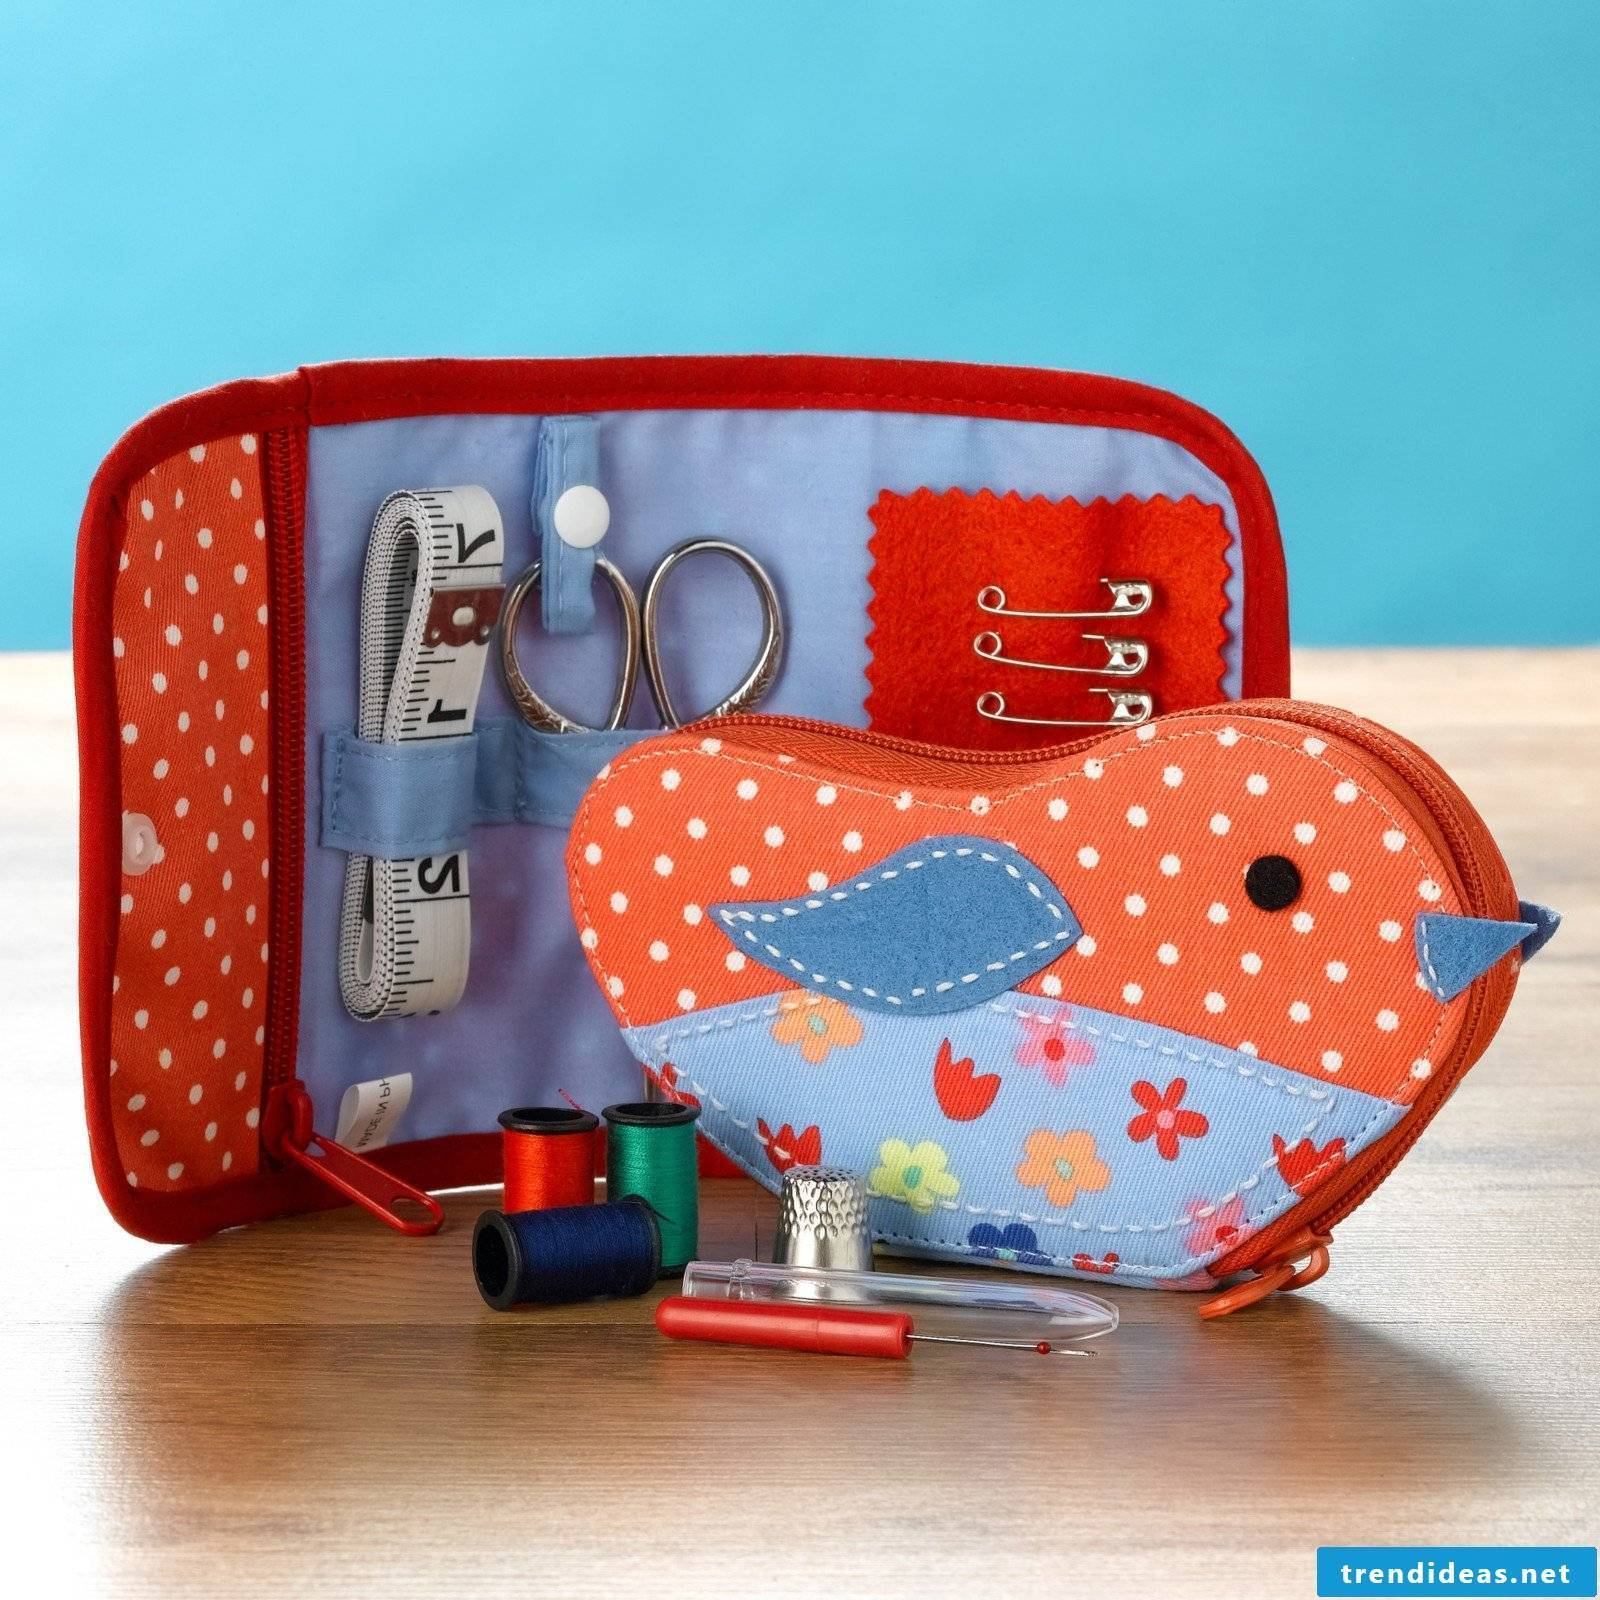 Keep sewing items - cute and creative